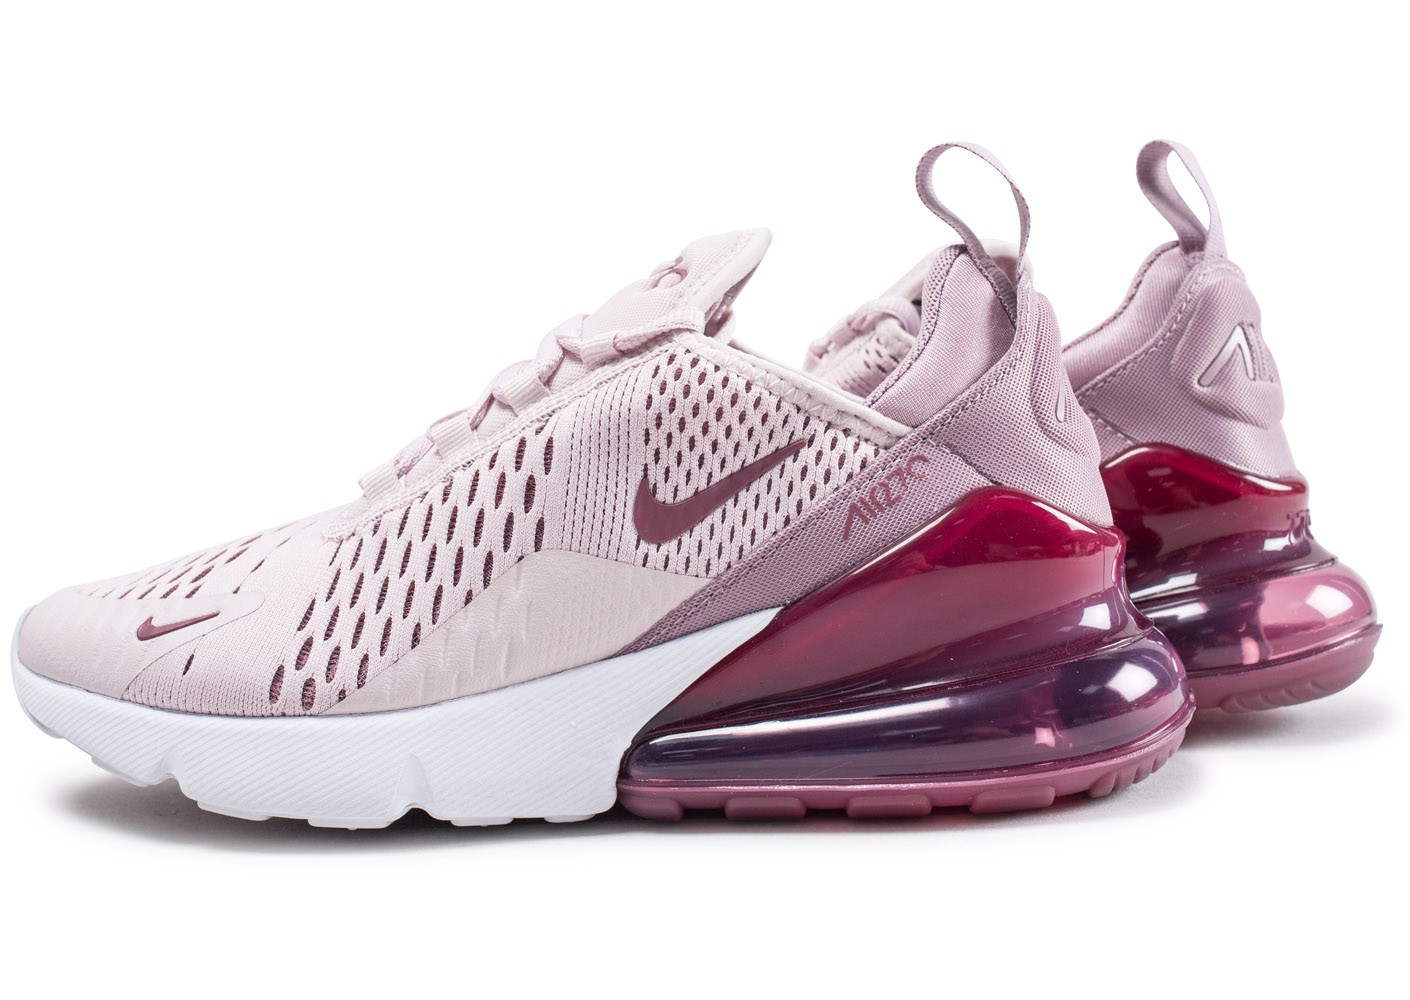 nike air max 270 rose chaussures baskets femme chausport. Black Bedroom Furniture Sets. Home Design Ideas